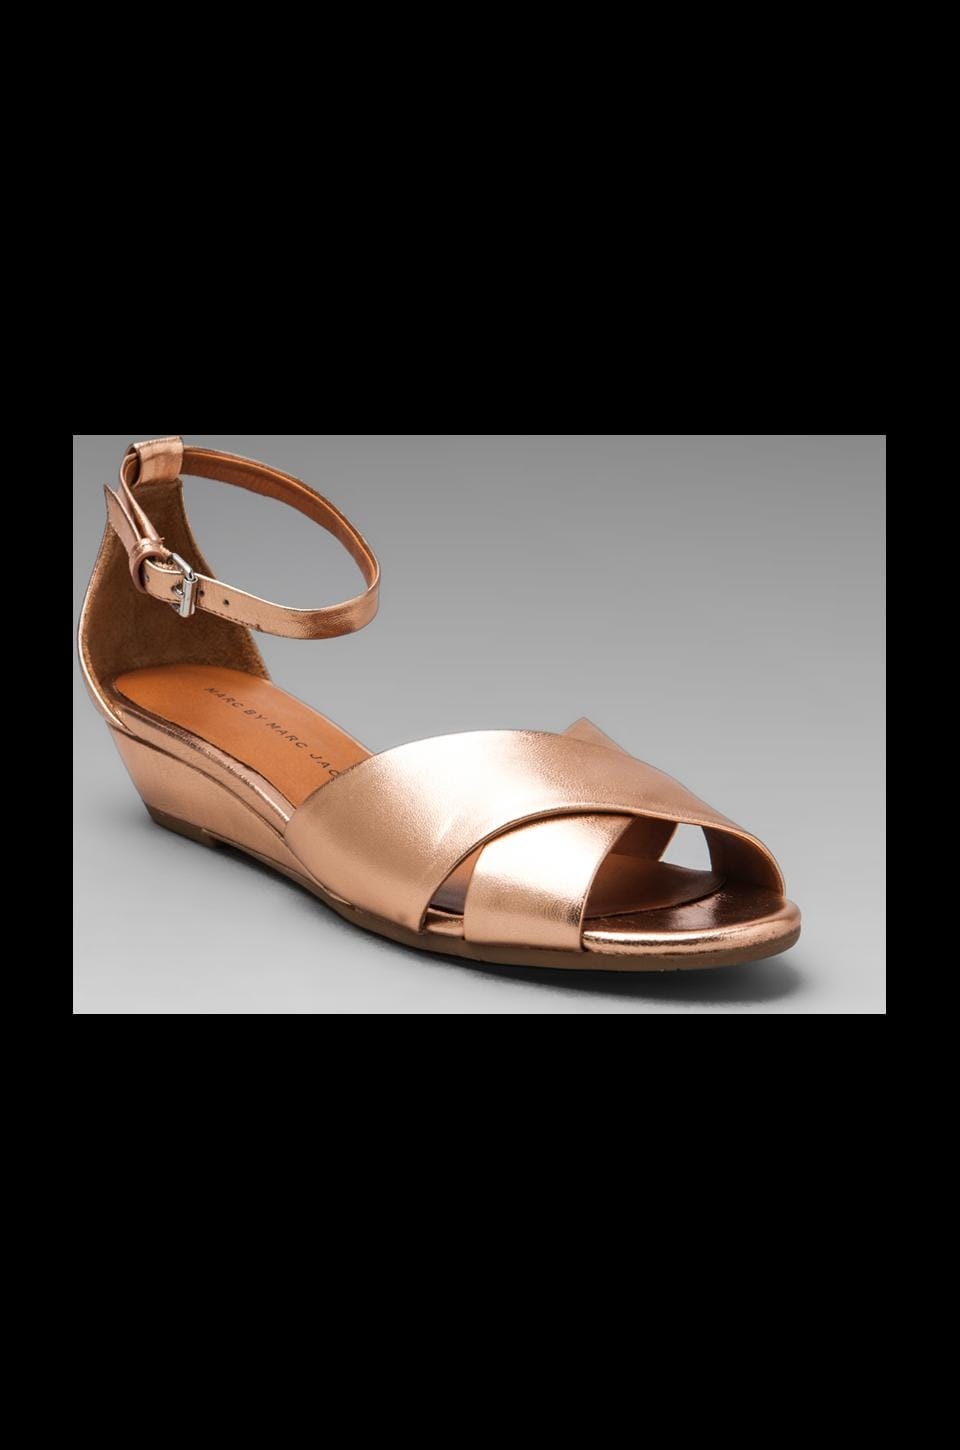 Marc by Marc Jacobs Classic Sandal Wedge in Rose Gold